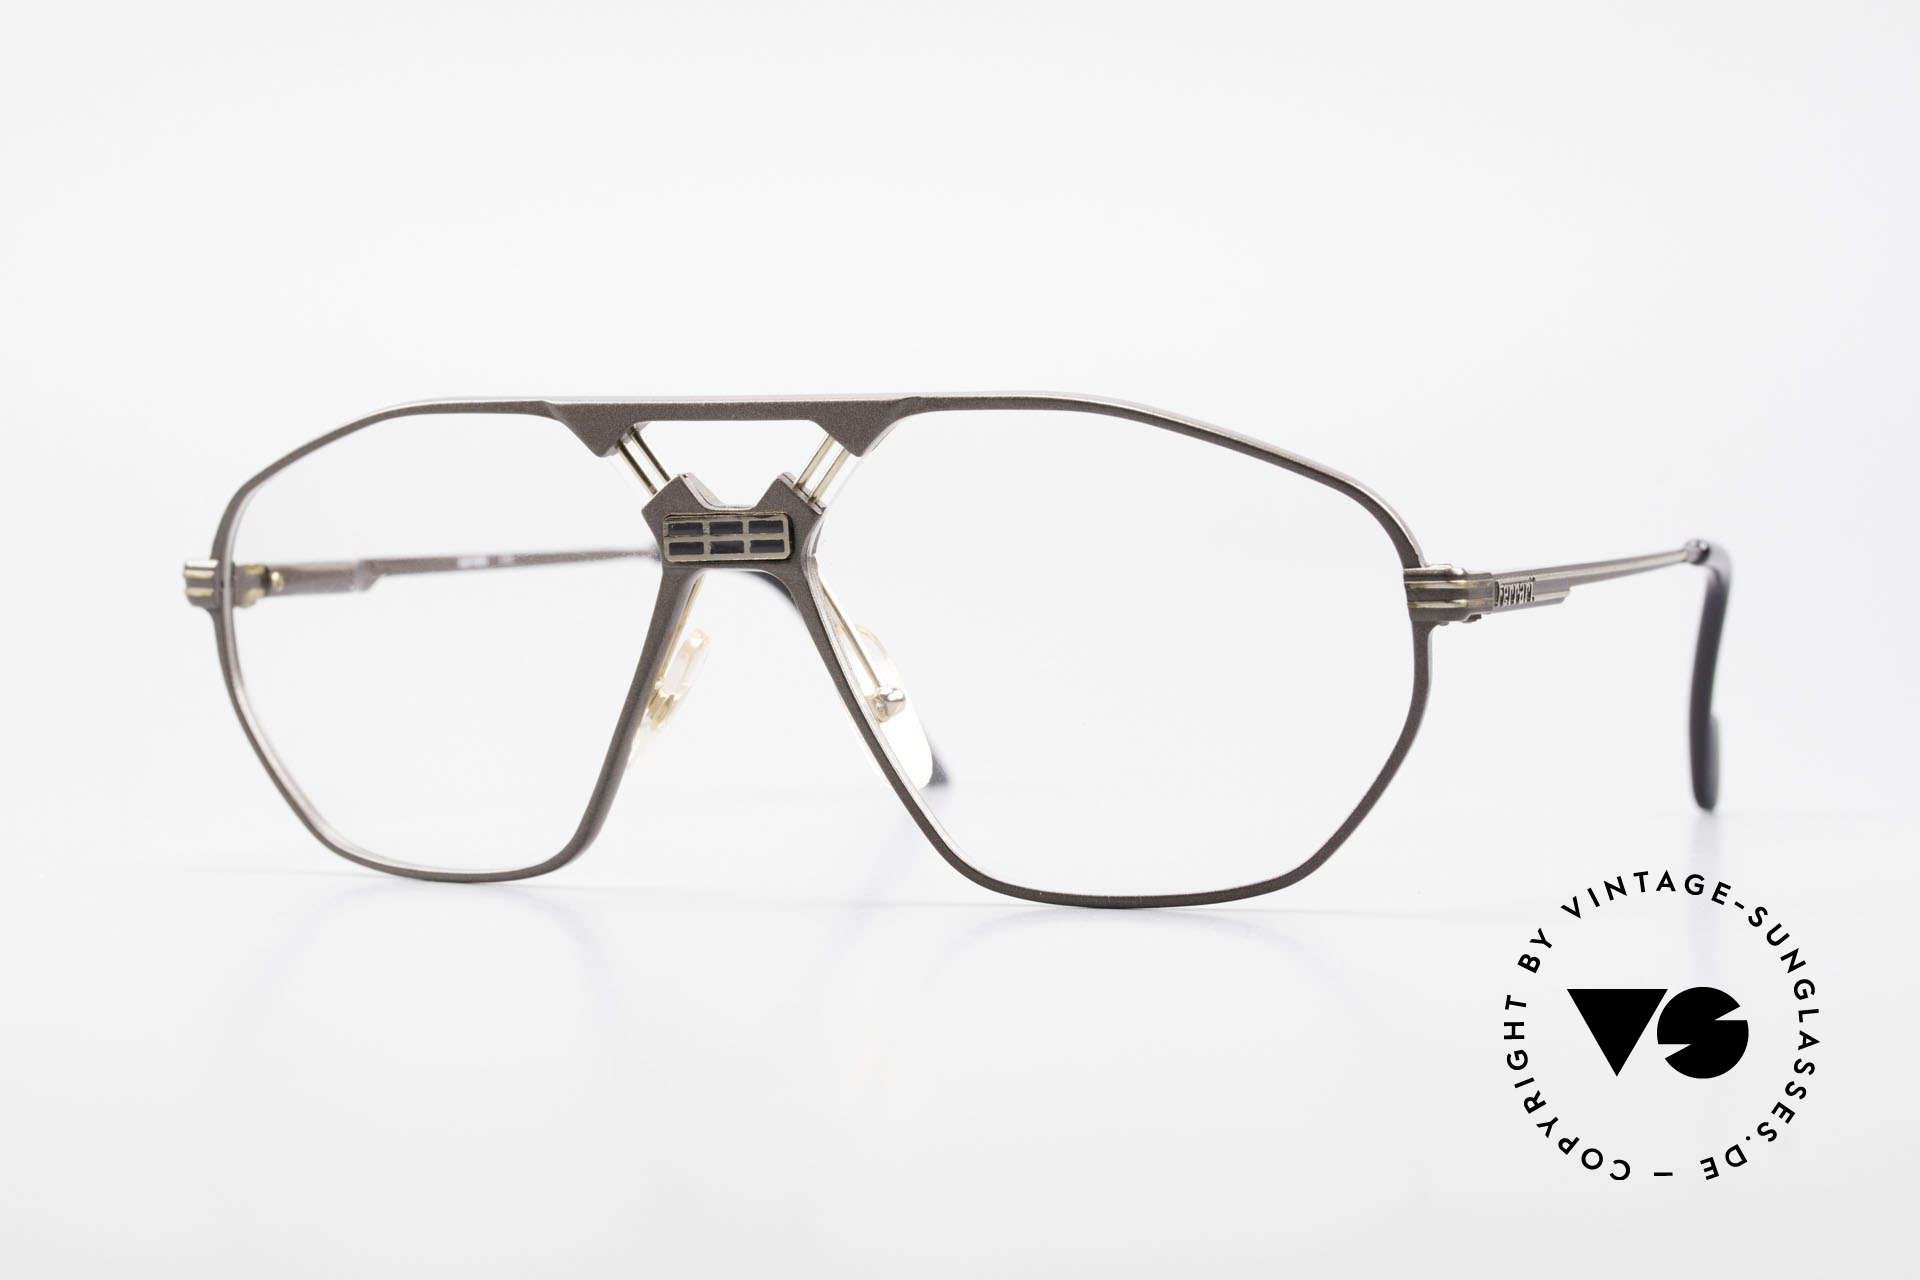 Ferrari F22 90's Formula 1 Vintage Glasses, luxury designer eyeglasses by Ferrari from 1992/93, Made for Men